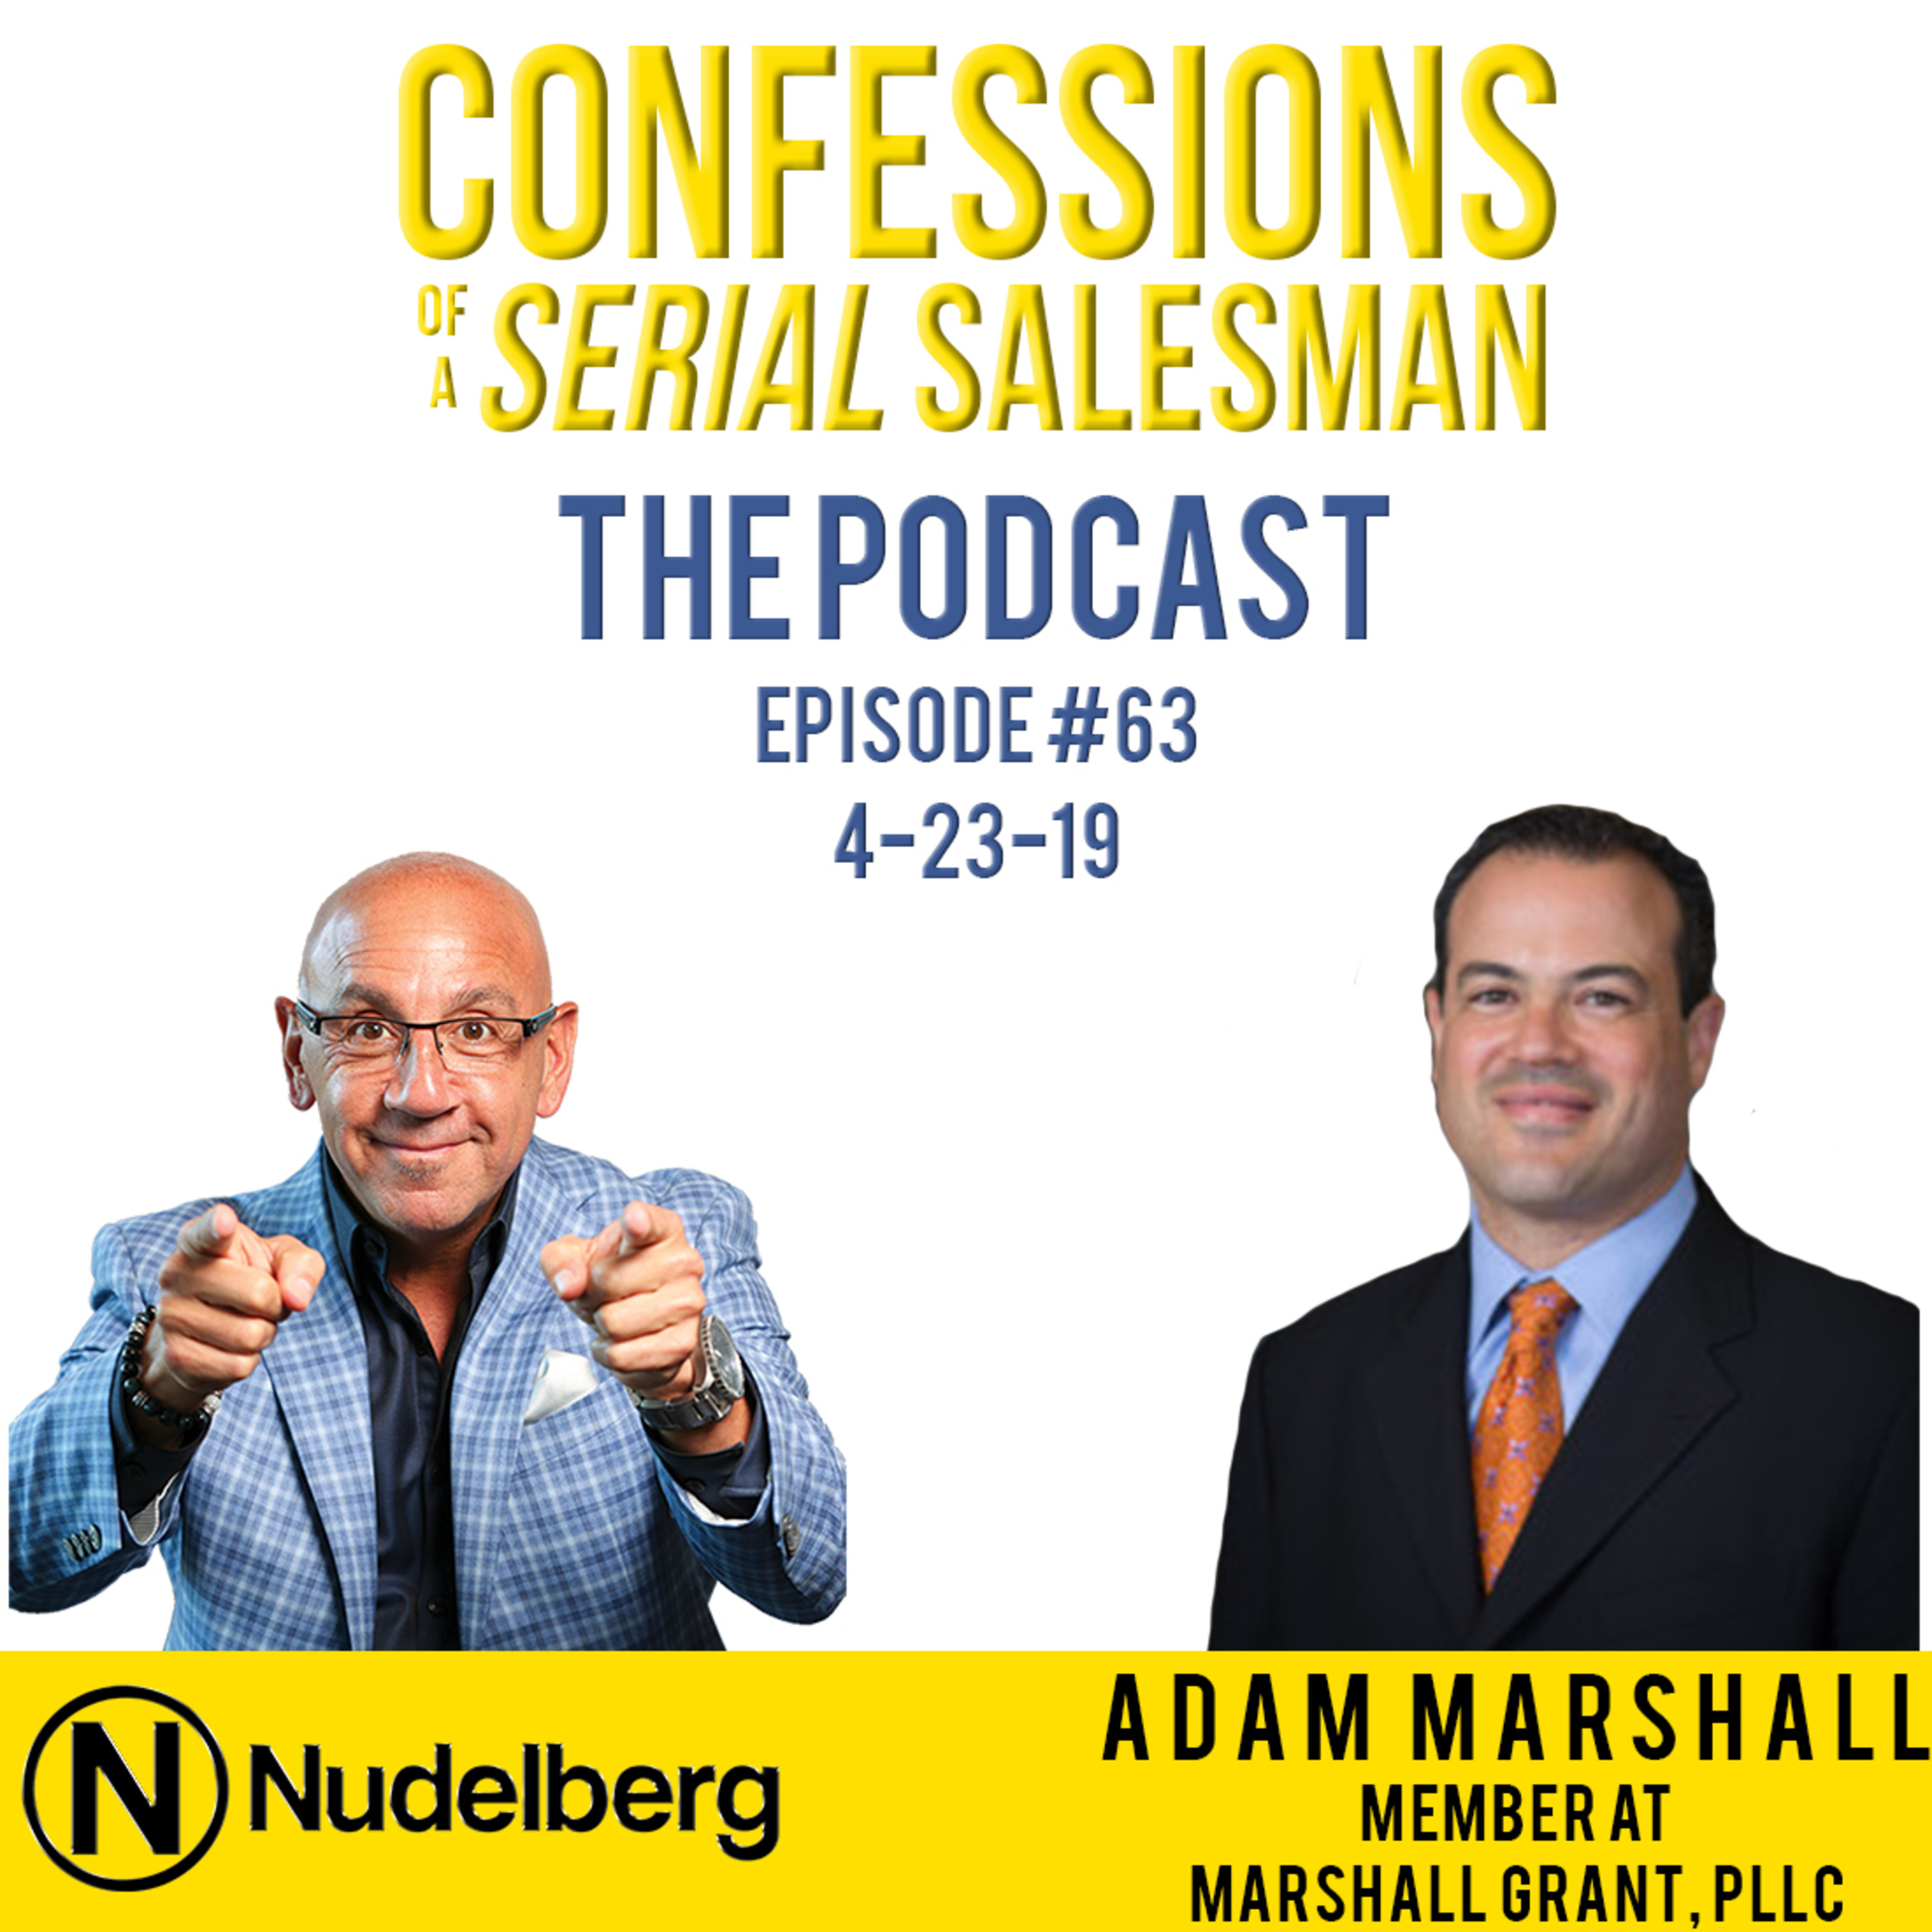 Confessions of a Serial Salesman The Podcast with Adam Marshall, Member at Marshall Grant, PLLC